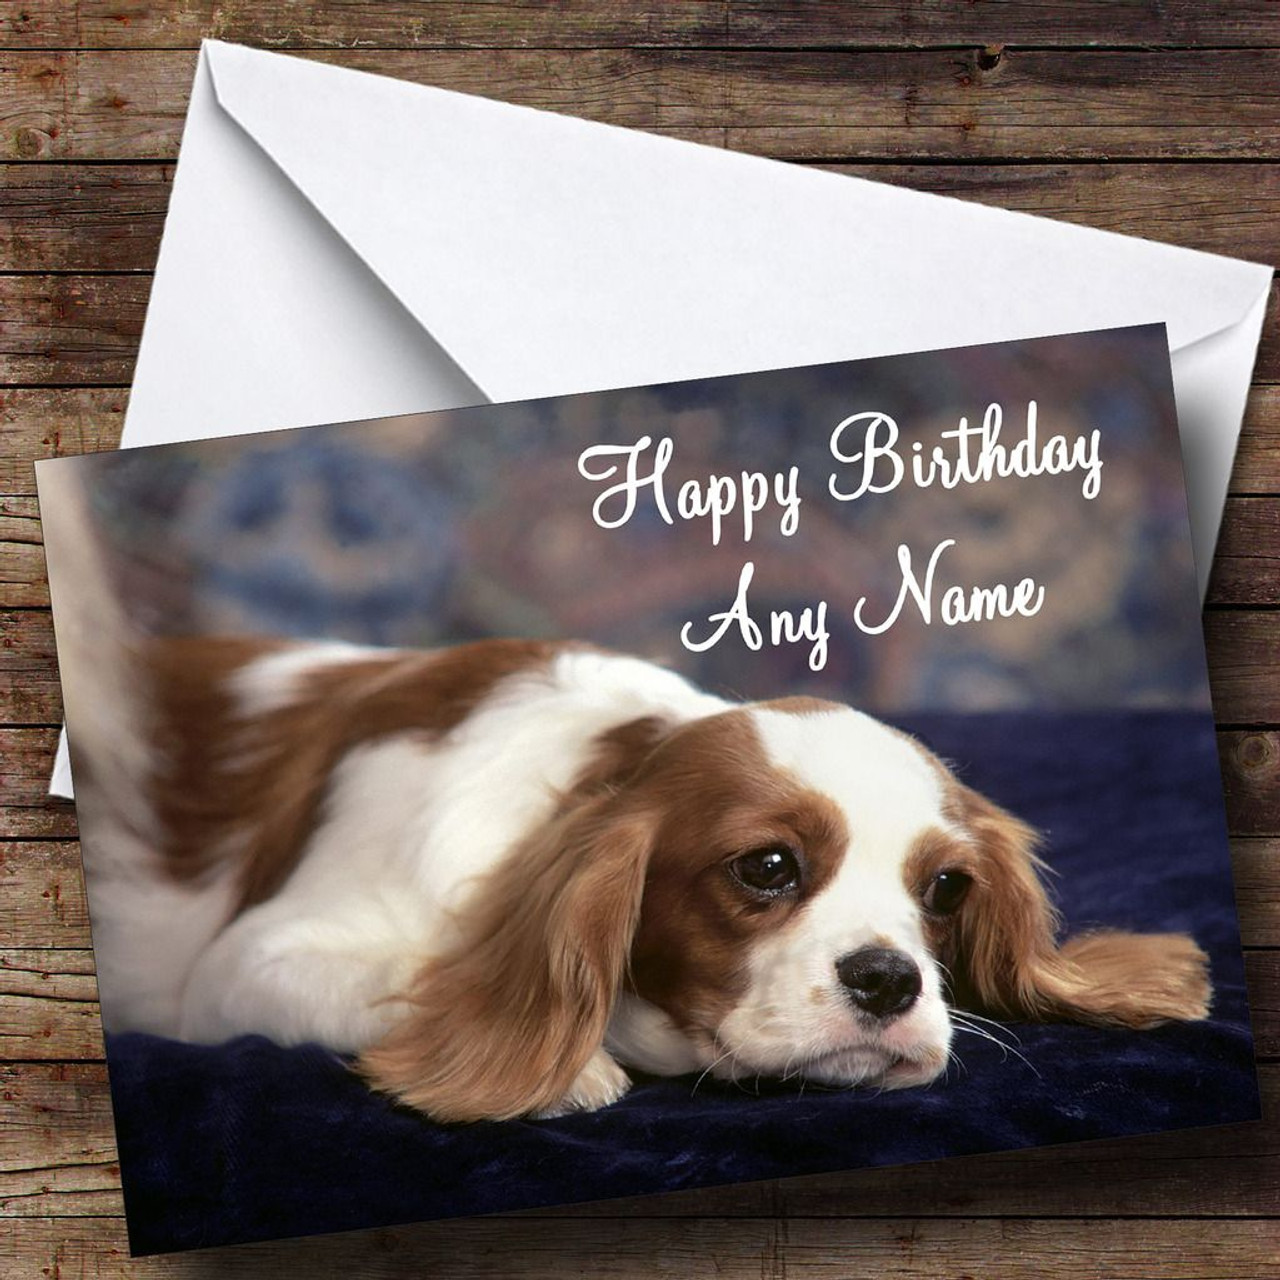 King Charles Spaniel Dog Personalised Birthday Card The